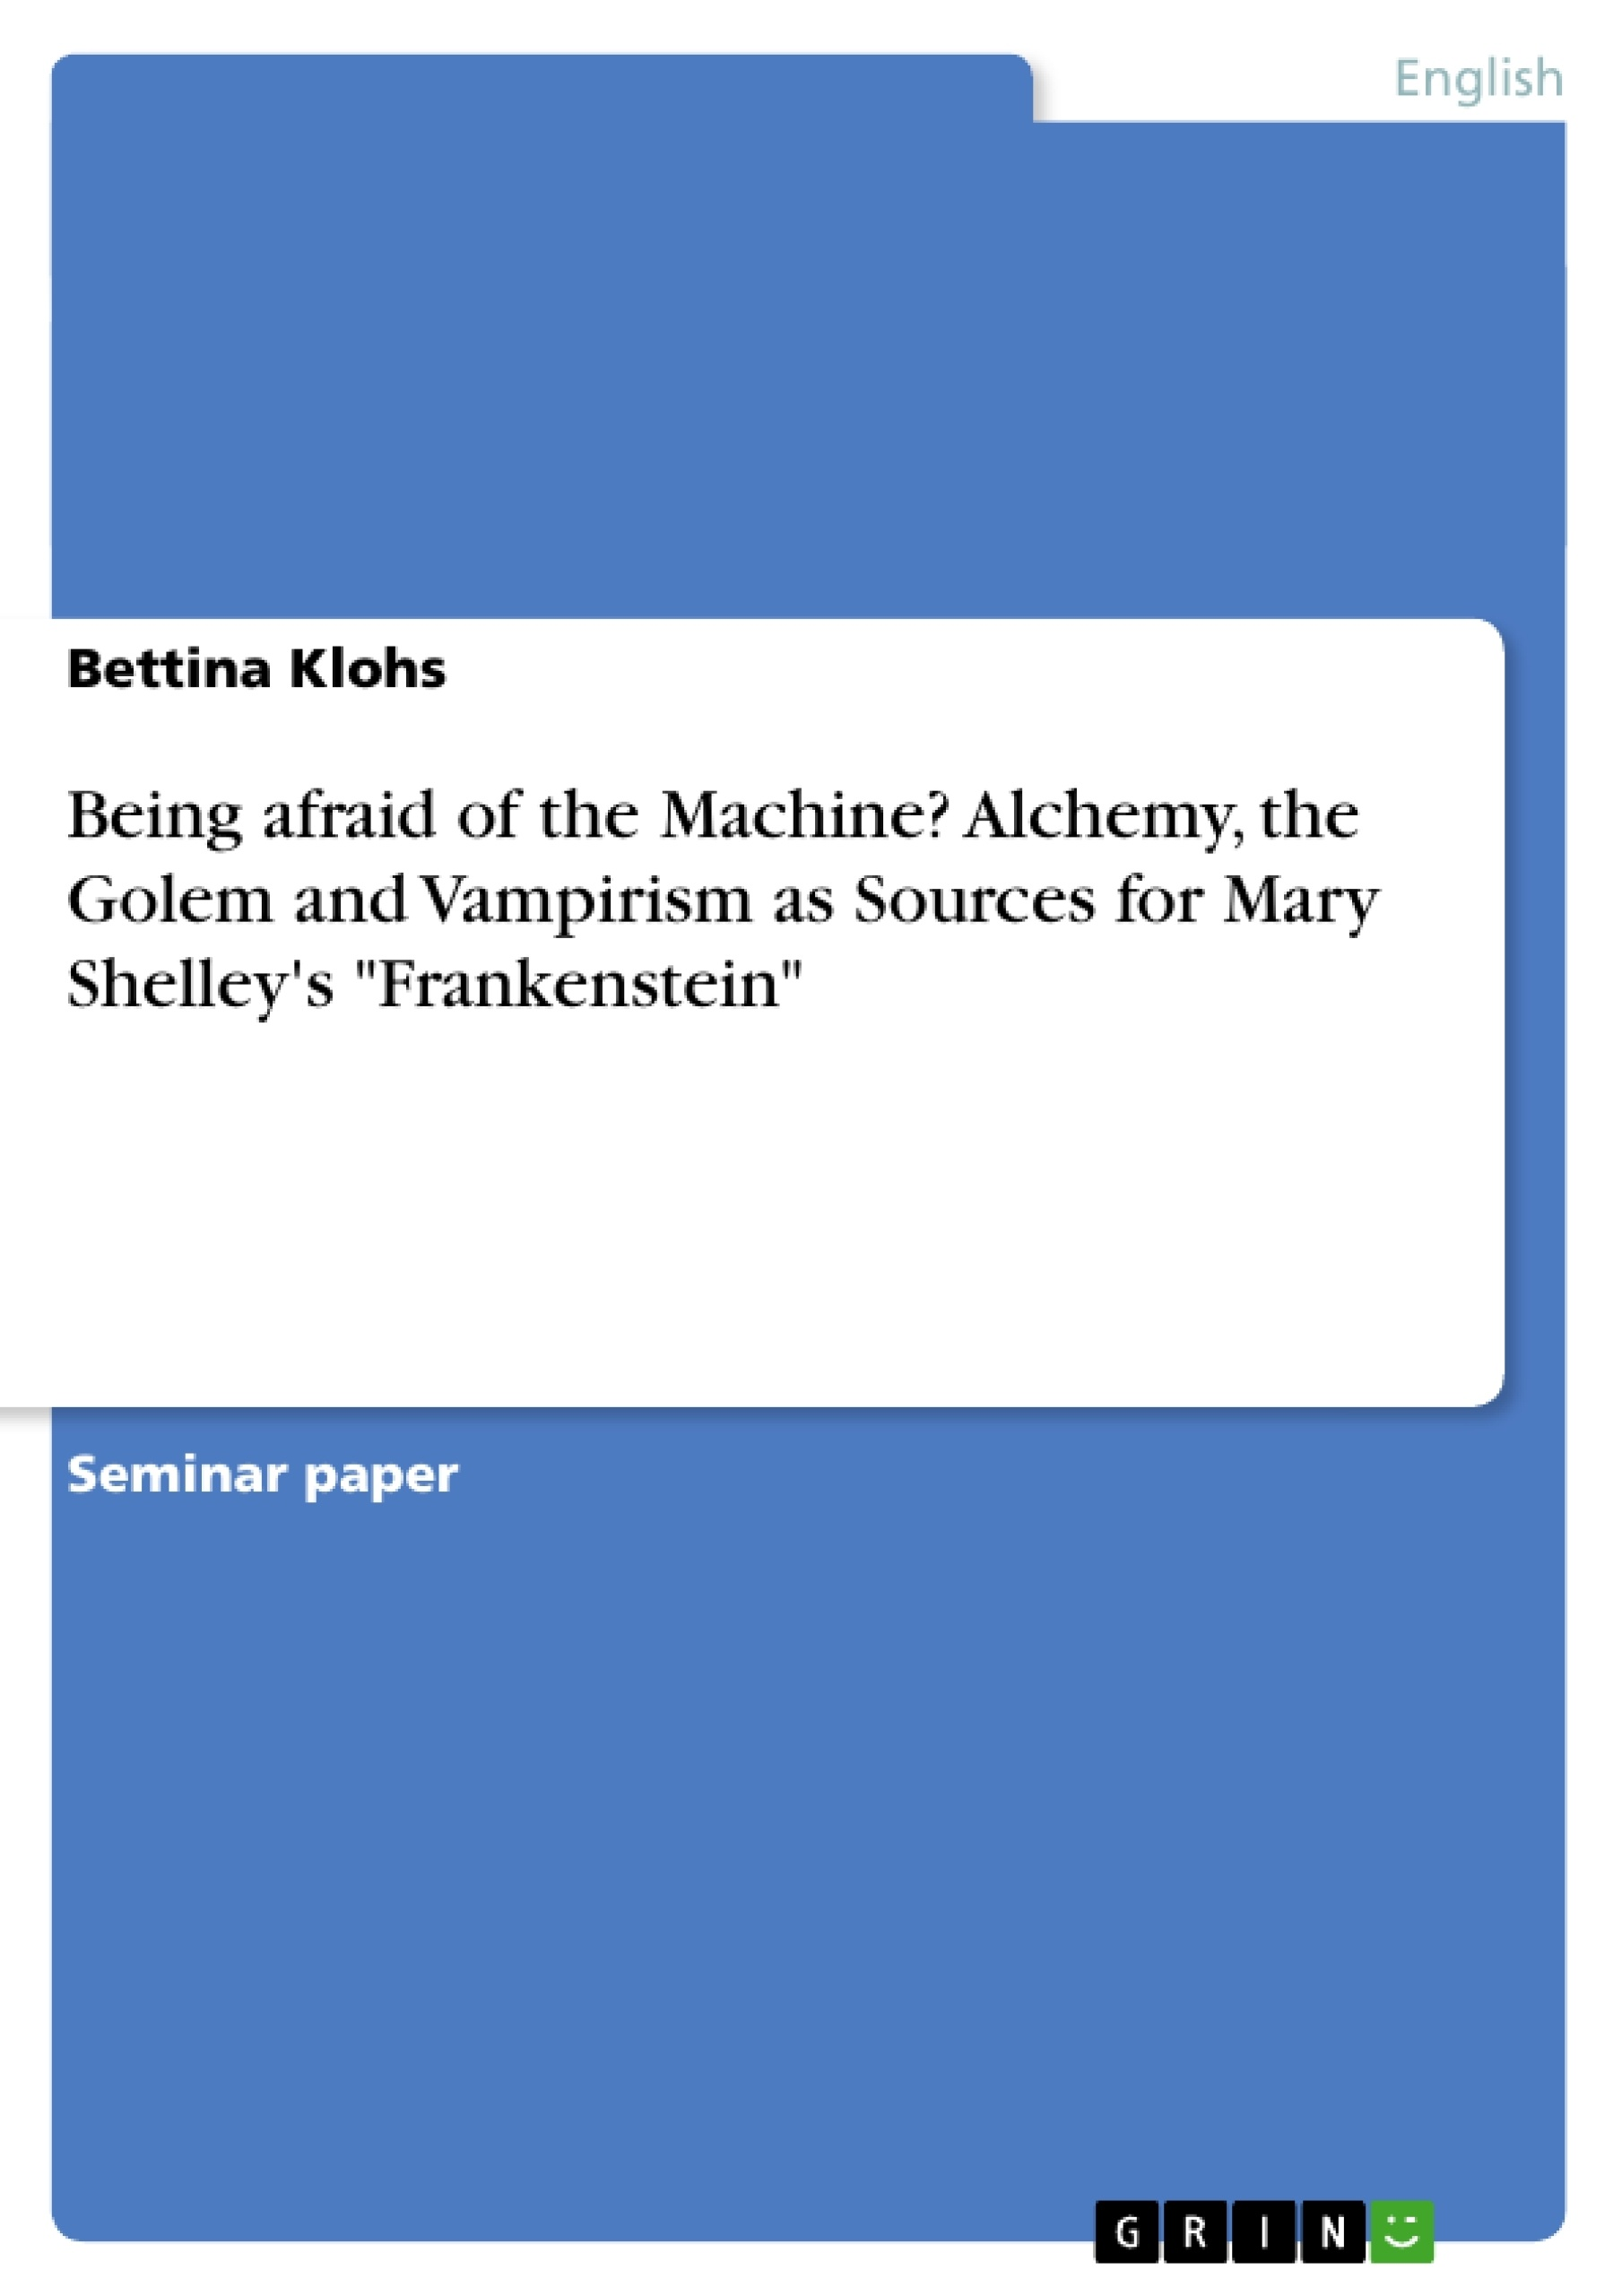 """Title: Being afraid of the Machine? Alchemy, the Golem and Vampirism as Sources for Mary Shelley's """"Frankenstein"""""""